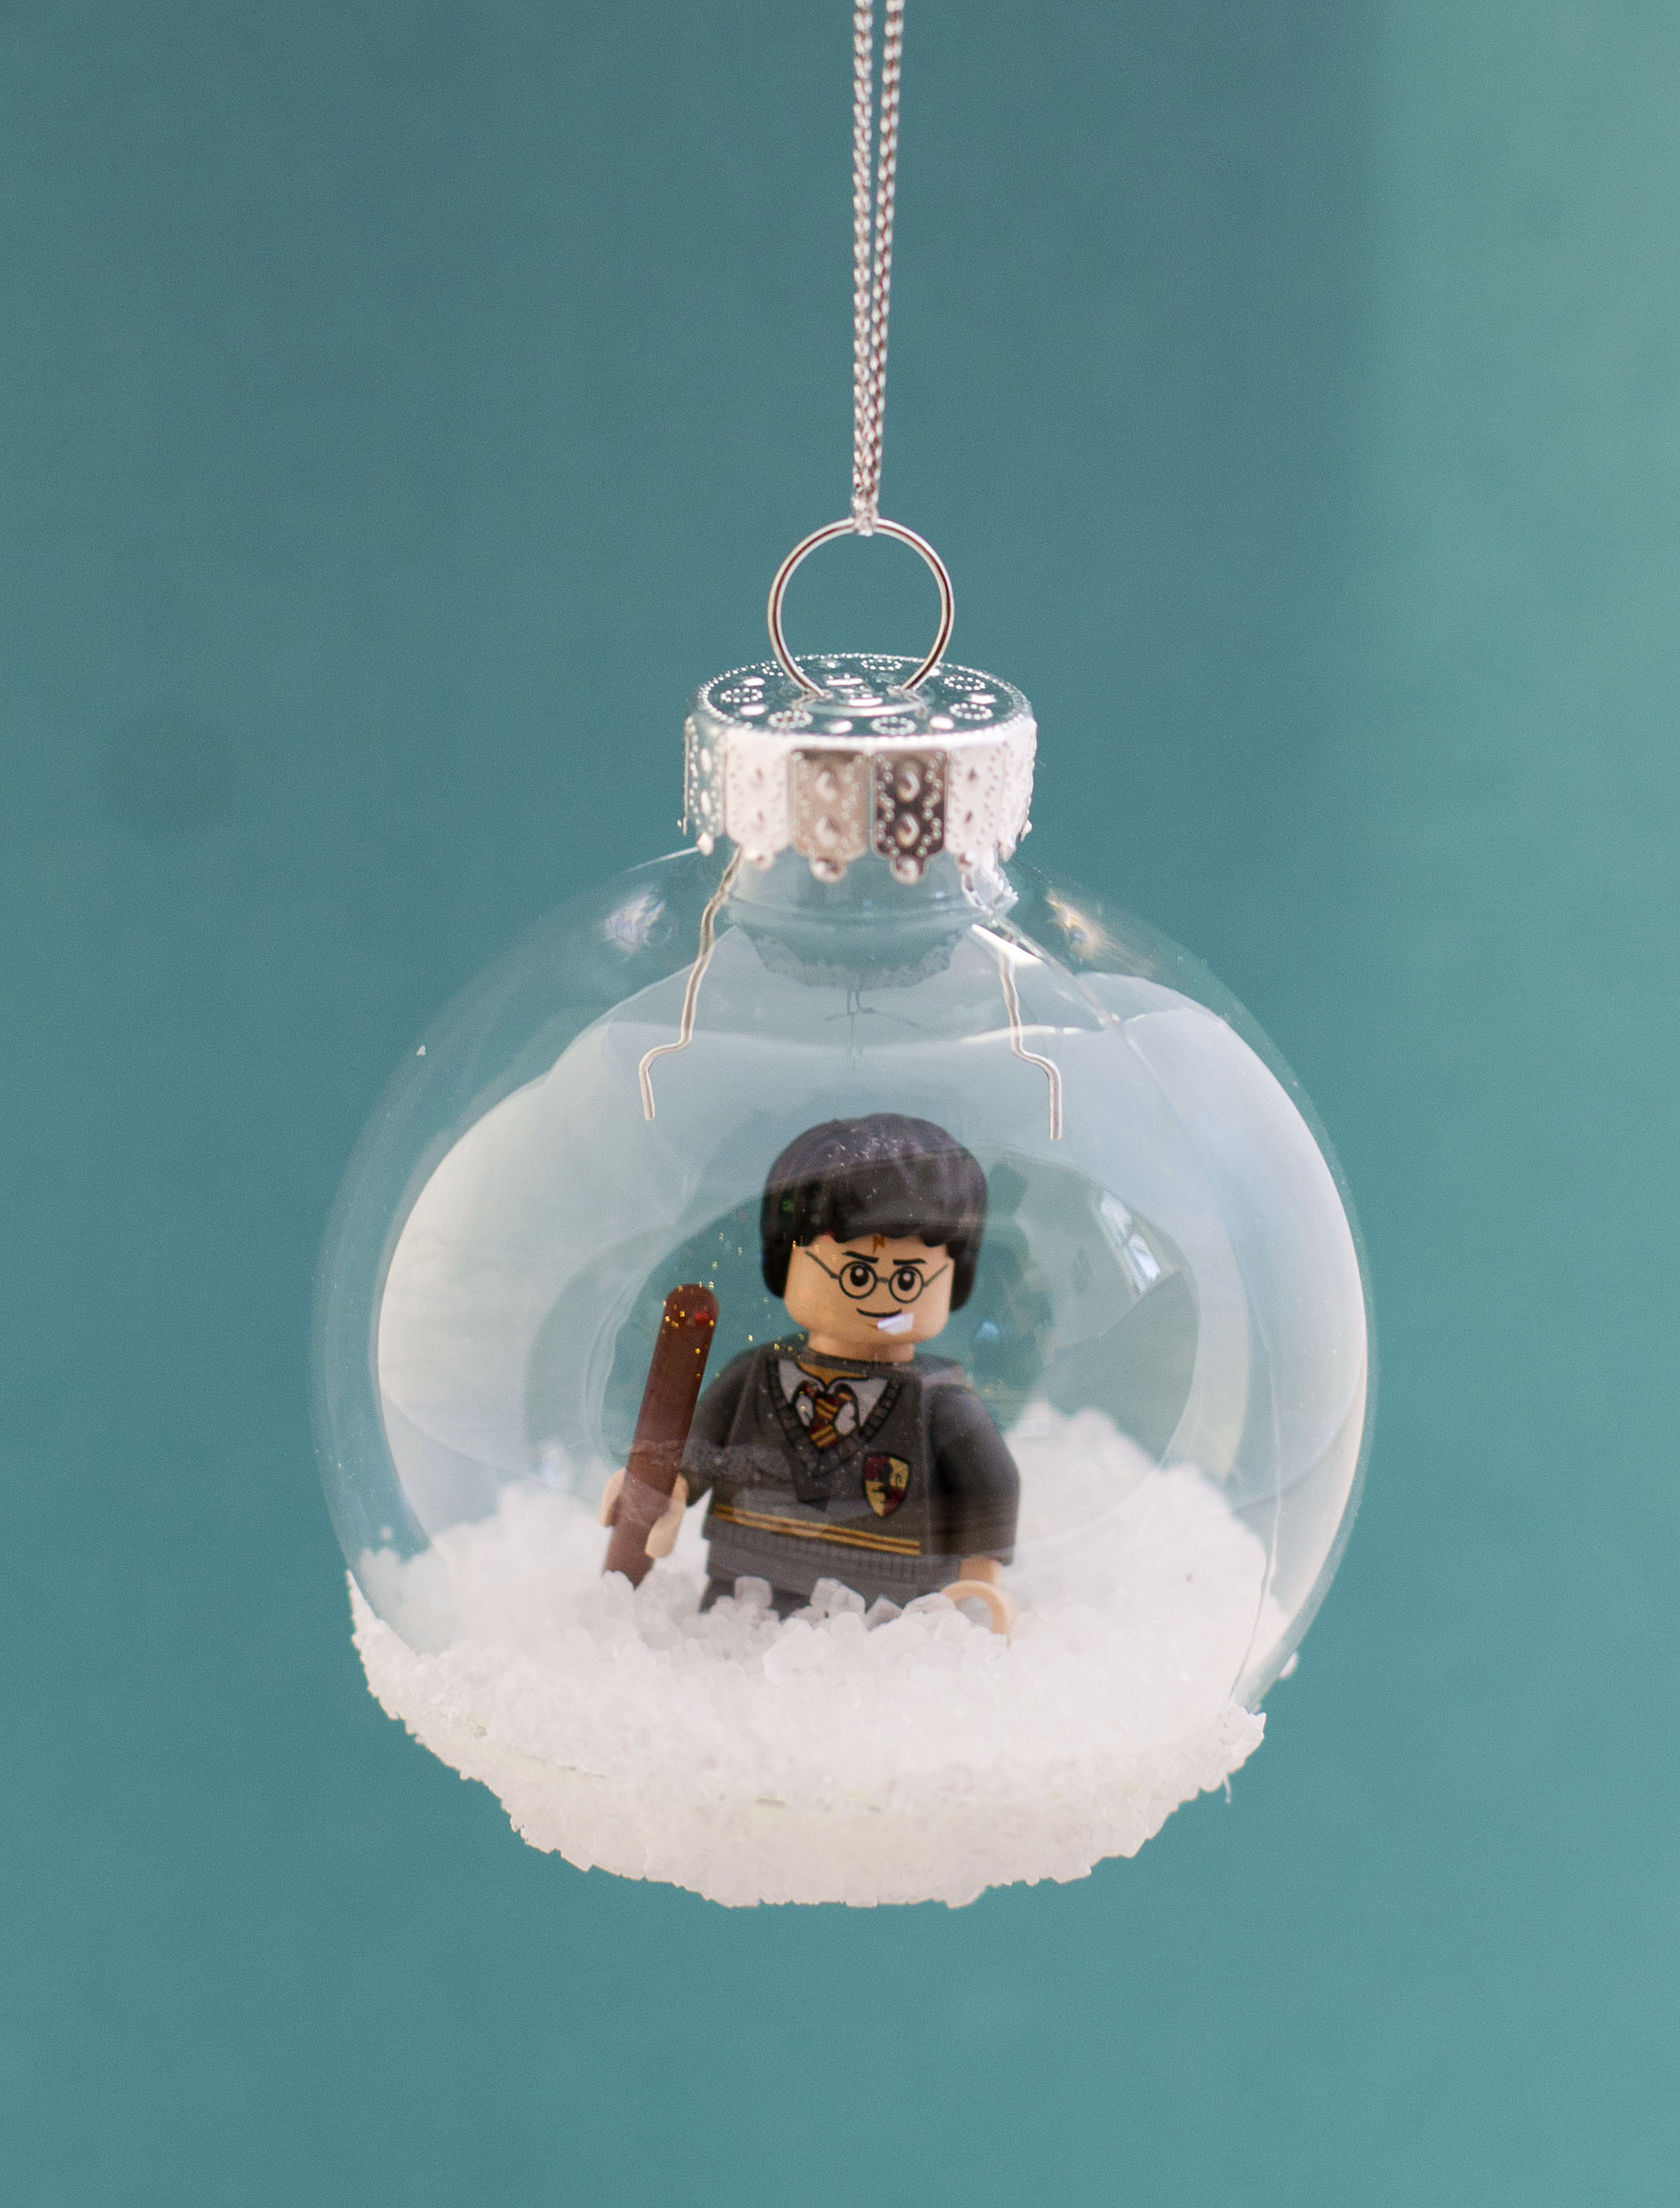 A Harry Potter Lego Minifigure Enclosed In A Plastic Christmas Tree Ornament Bulb The Bulb